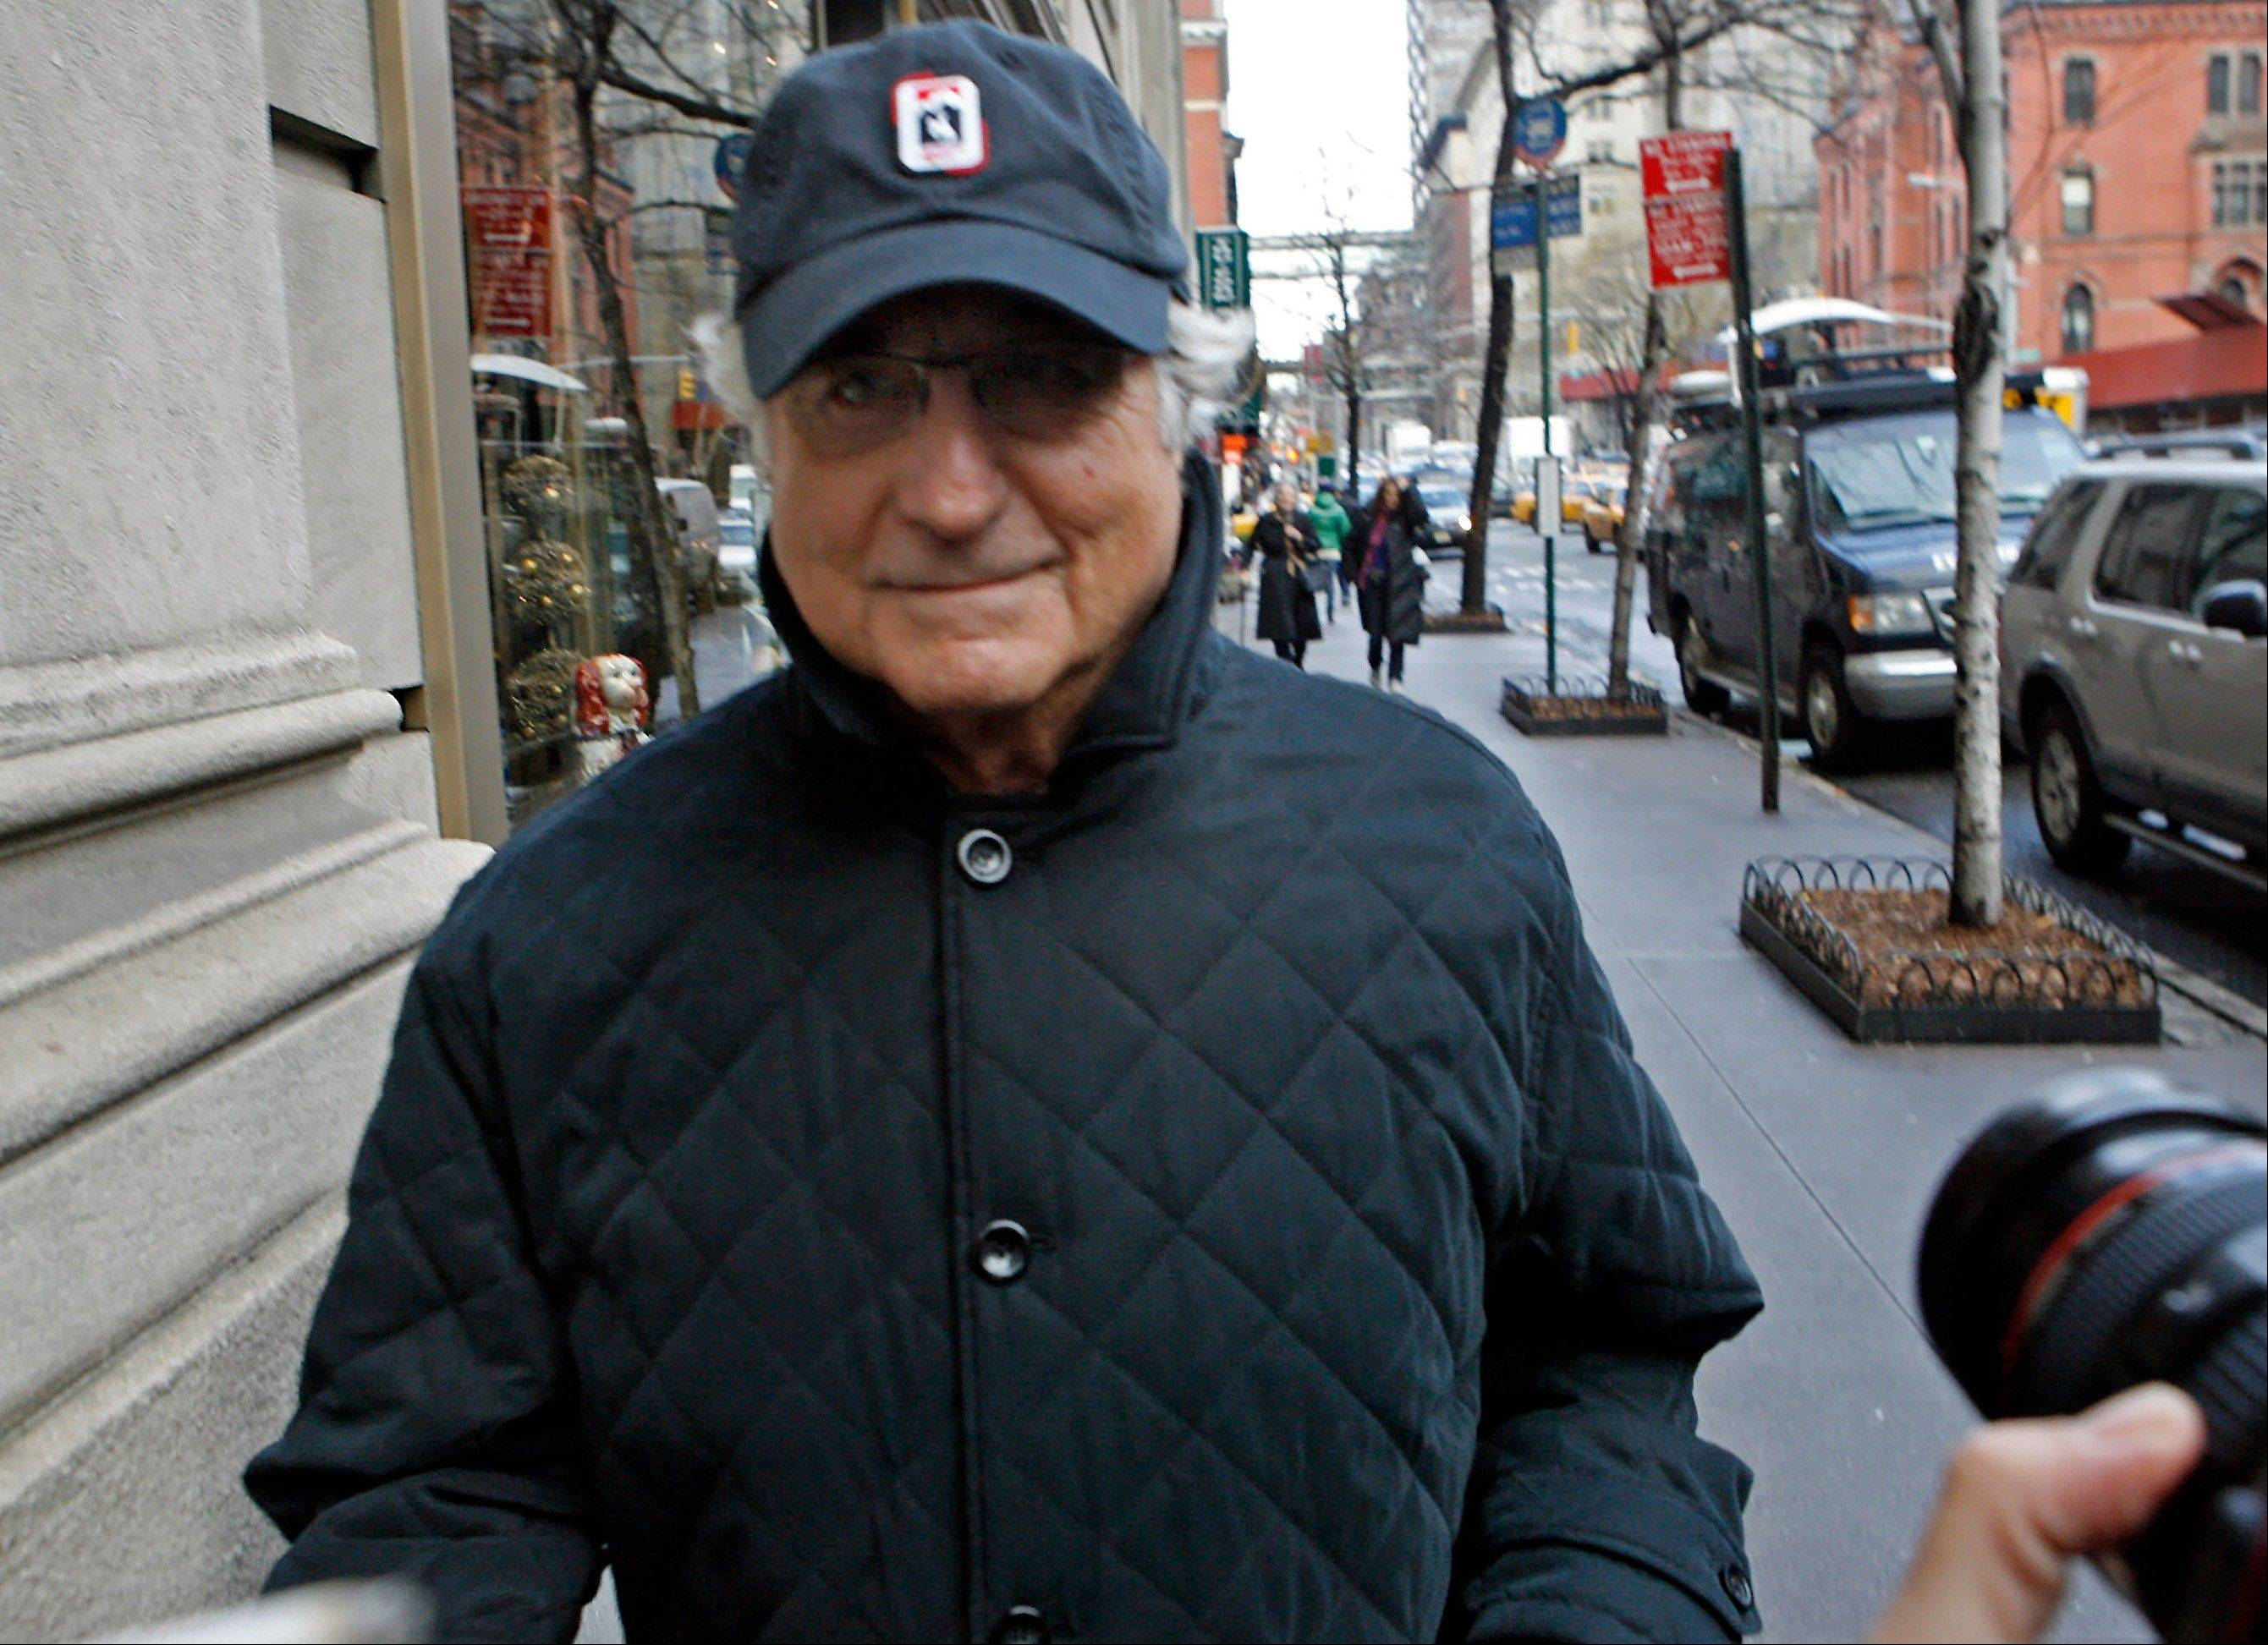 In December 2008, two of Bernard Madoff's most loyal employees met on a Manhattan street corner and fretted over a closely held secret that the rest of the world would learn about eight days later: that their boss, Madoff, was a con man for the ages. The exchange was recounted for the first time in a newly rewritten indictment this week expanding the case and charges against five defendants headed for a trial next year.